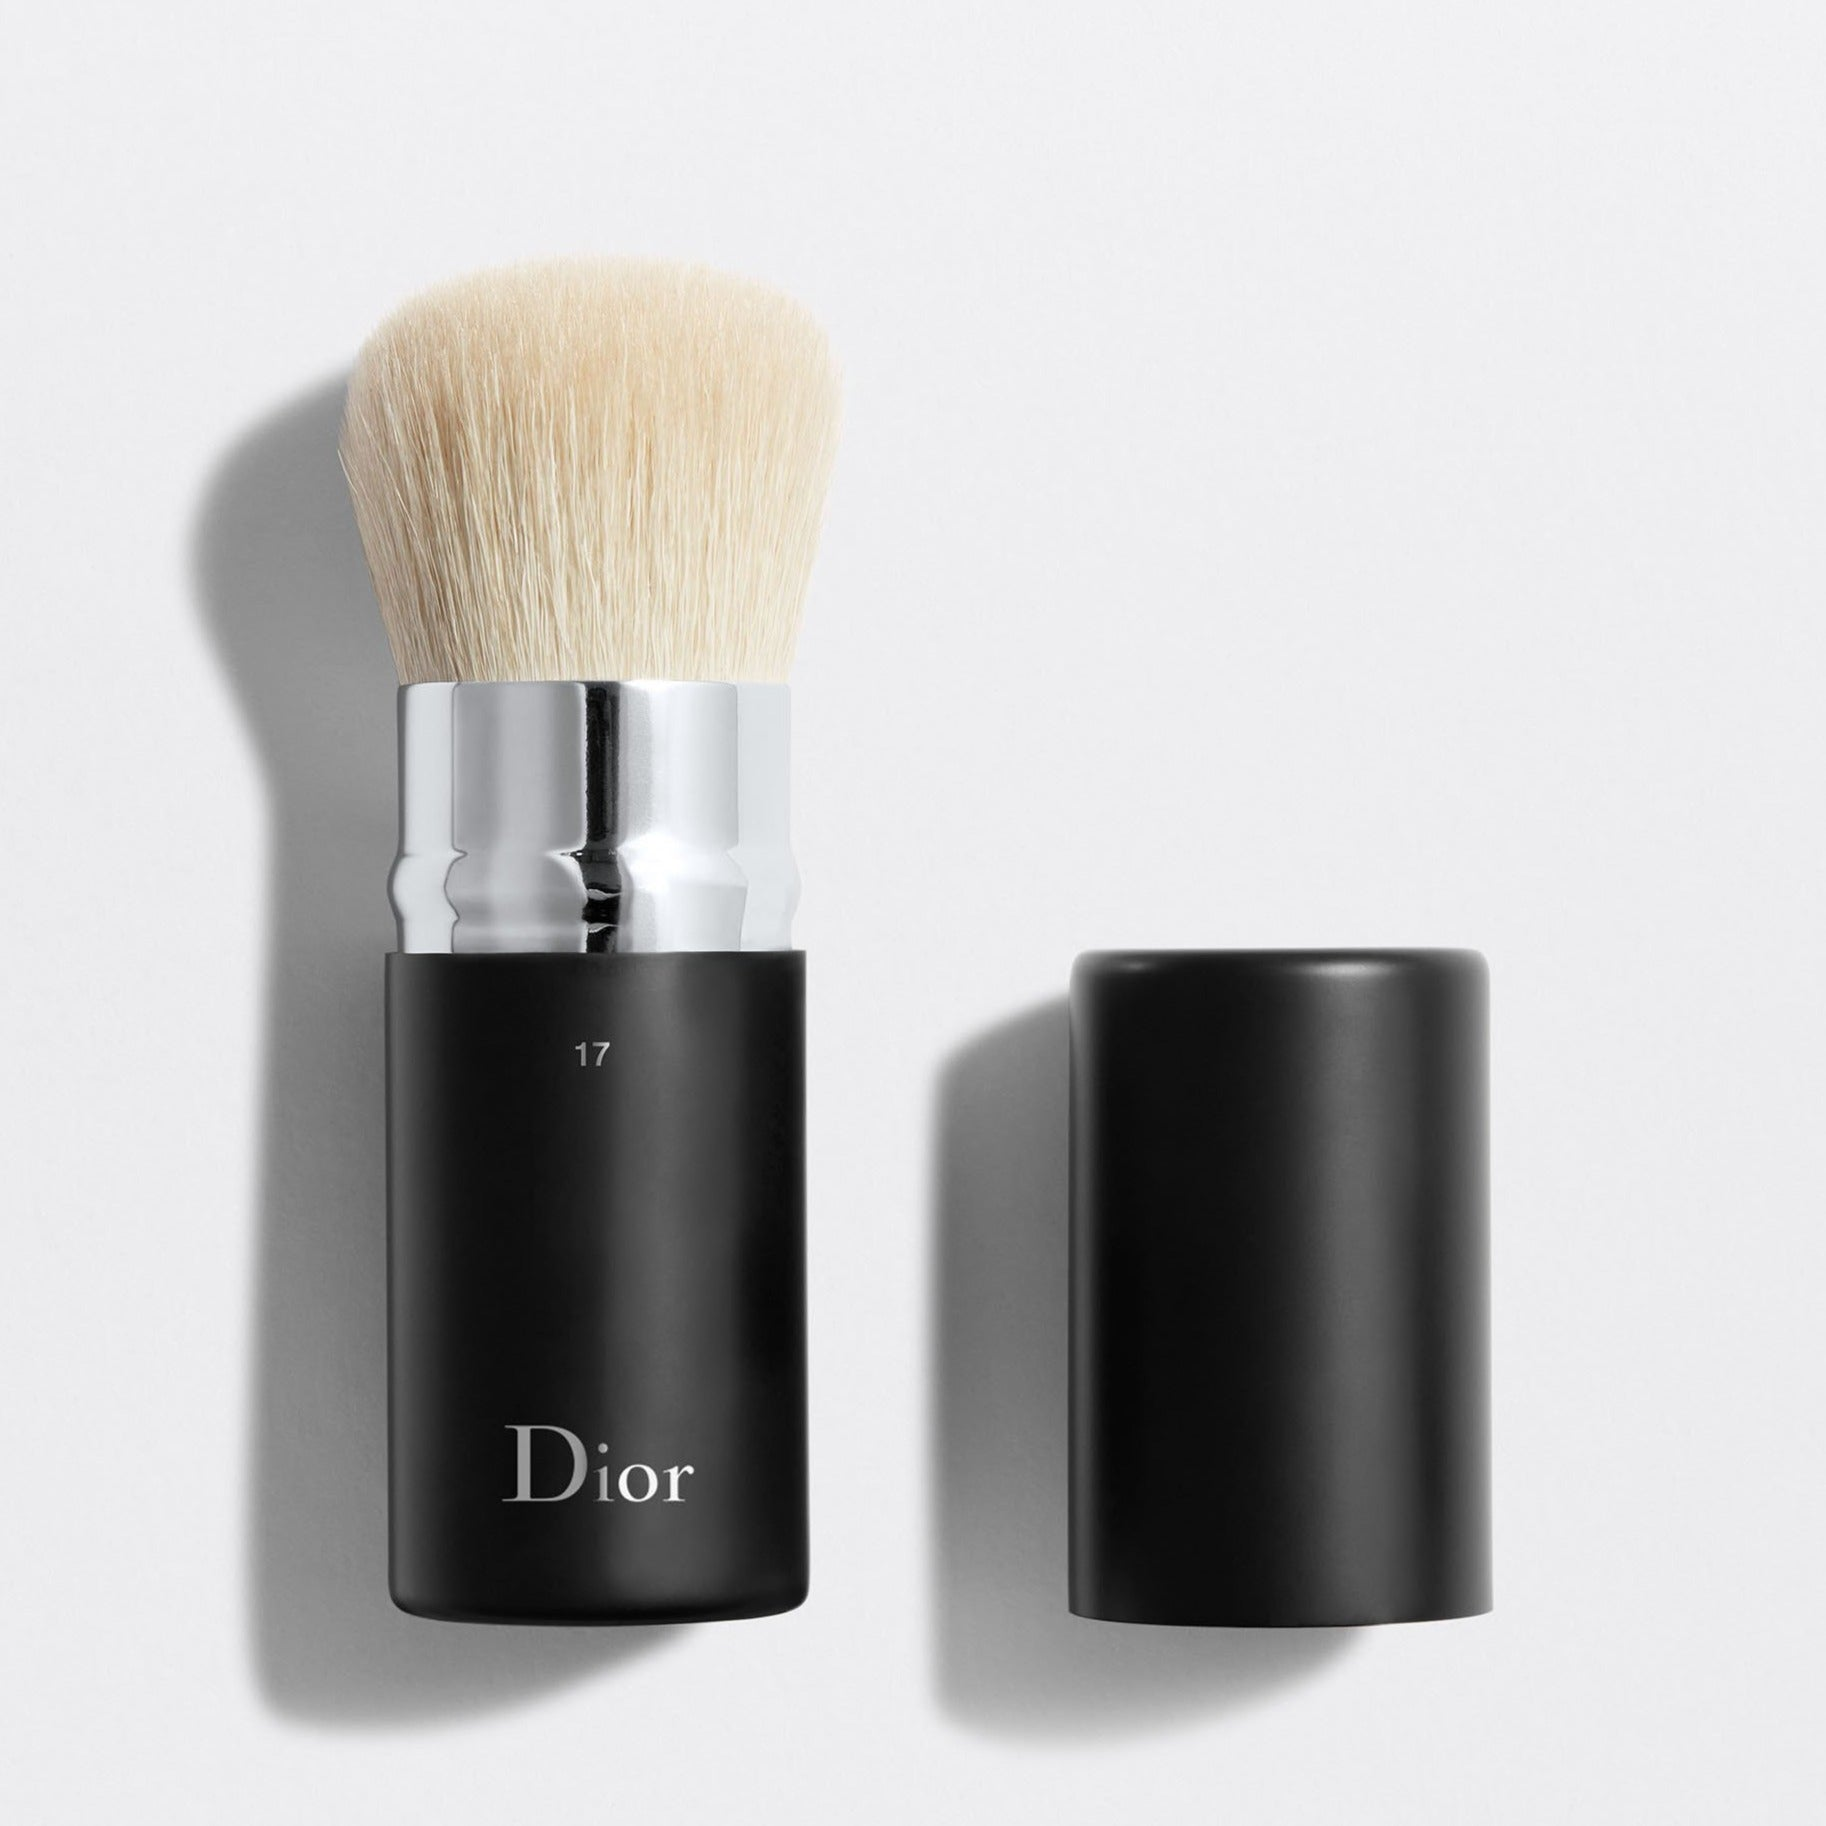 DIOR BACKSTAGE KABUKI BRUSH N°17 | Retractable kabuki brush n°17